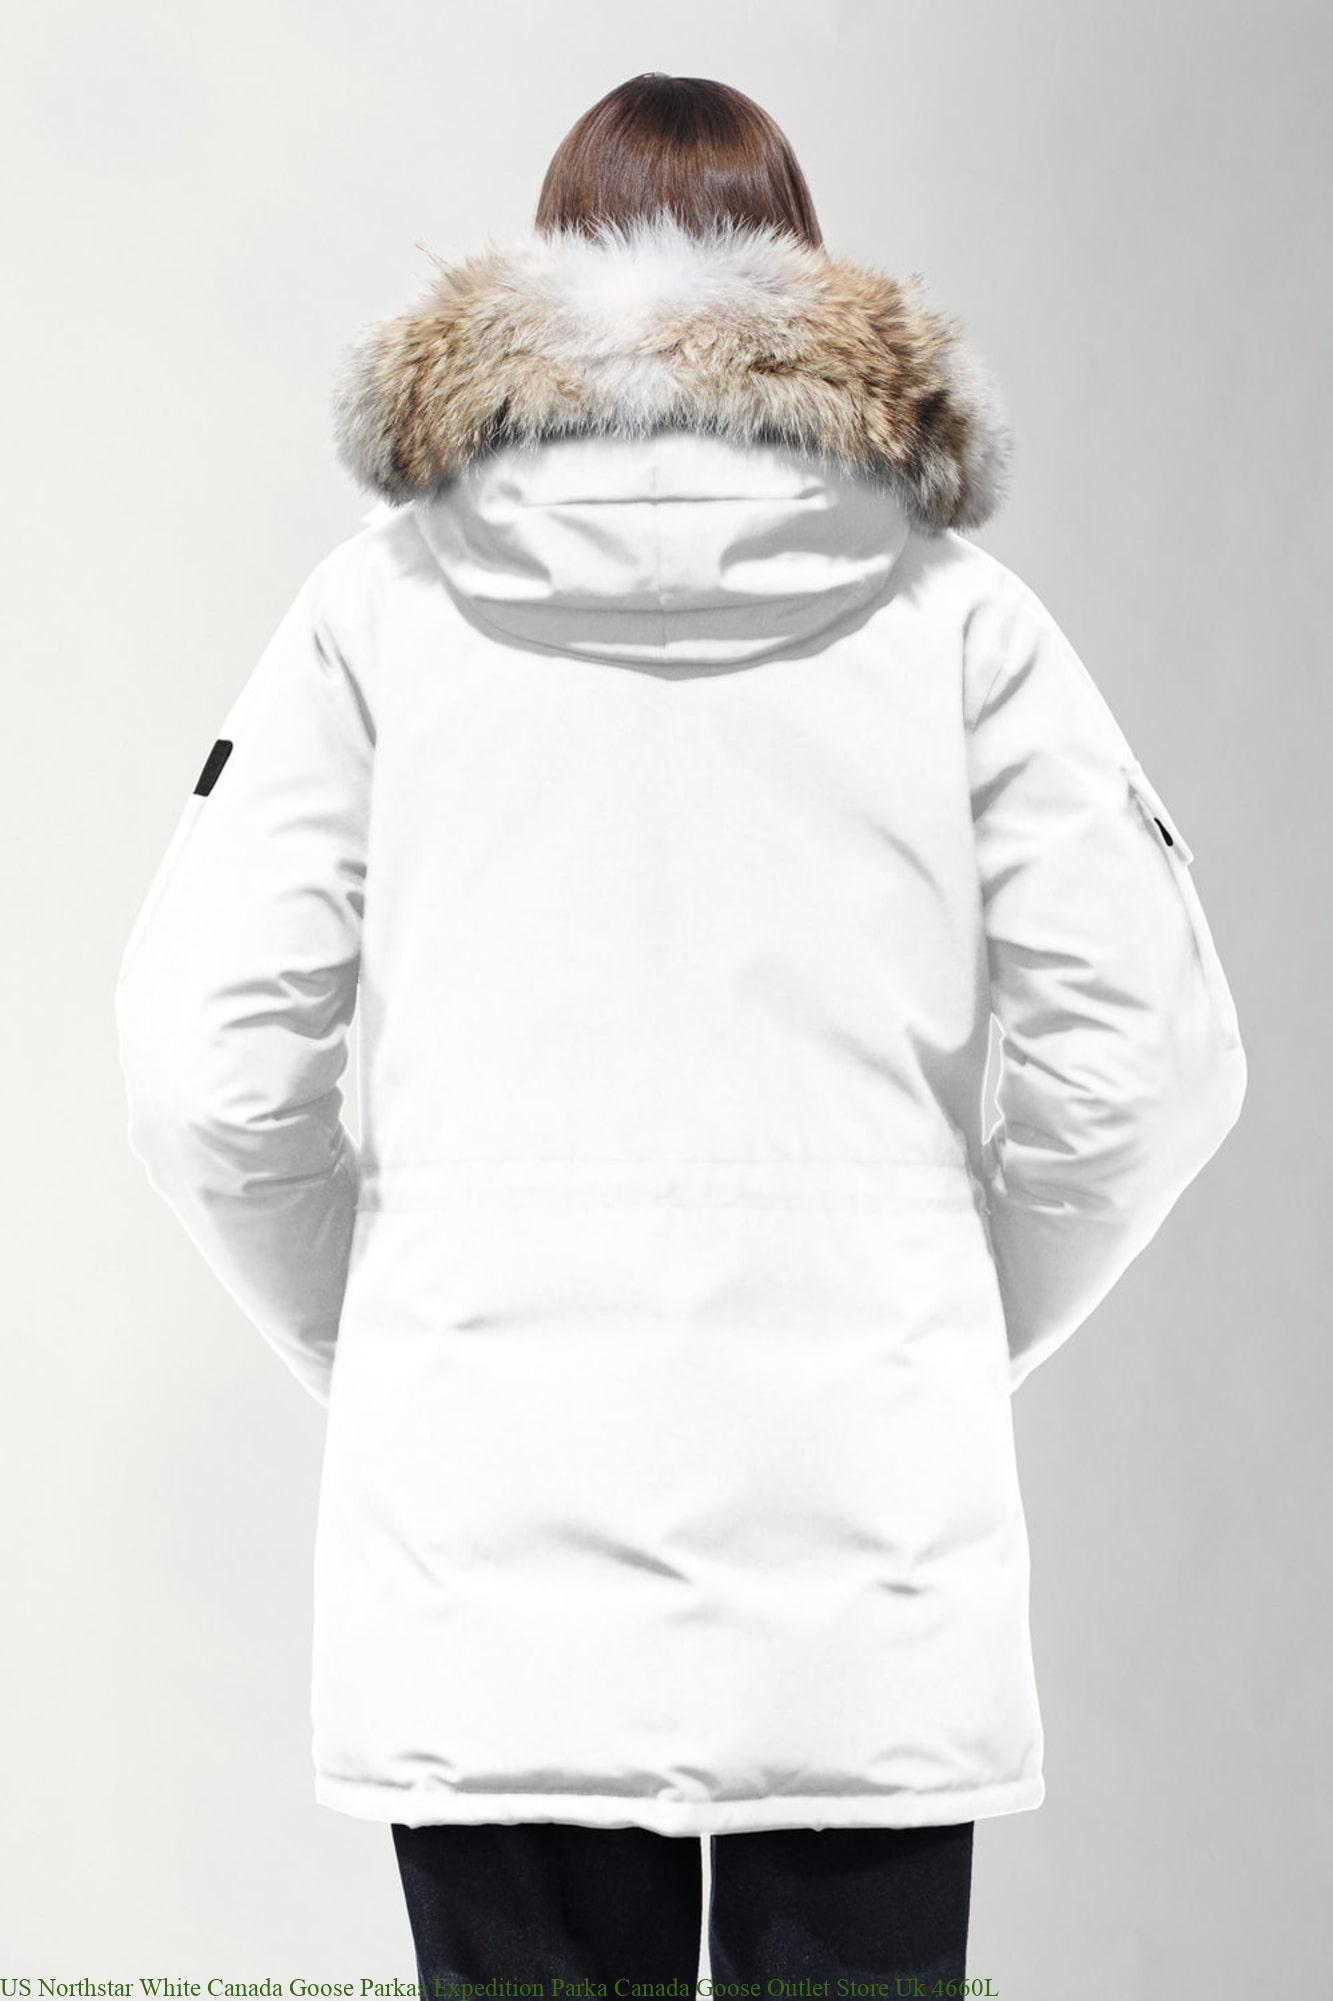 US Northstar White Canada Goose Parkas Expedition Parka ...